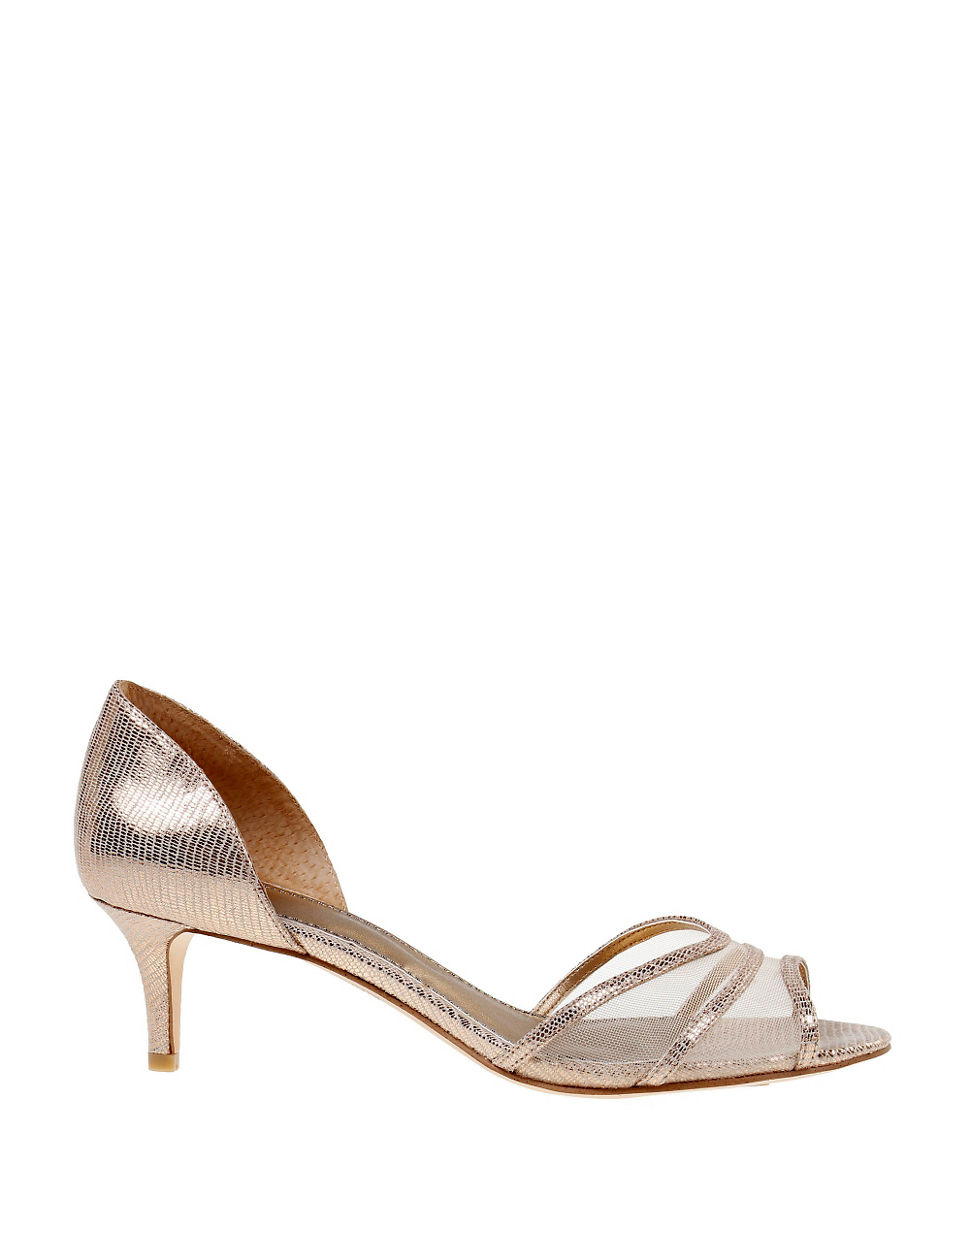 Belle by badgley mischka Nonnie Metallic Open toe Pumps in